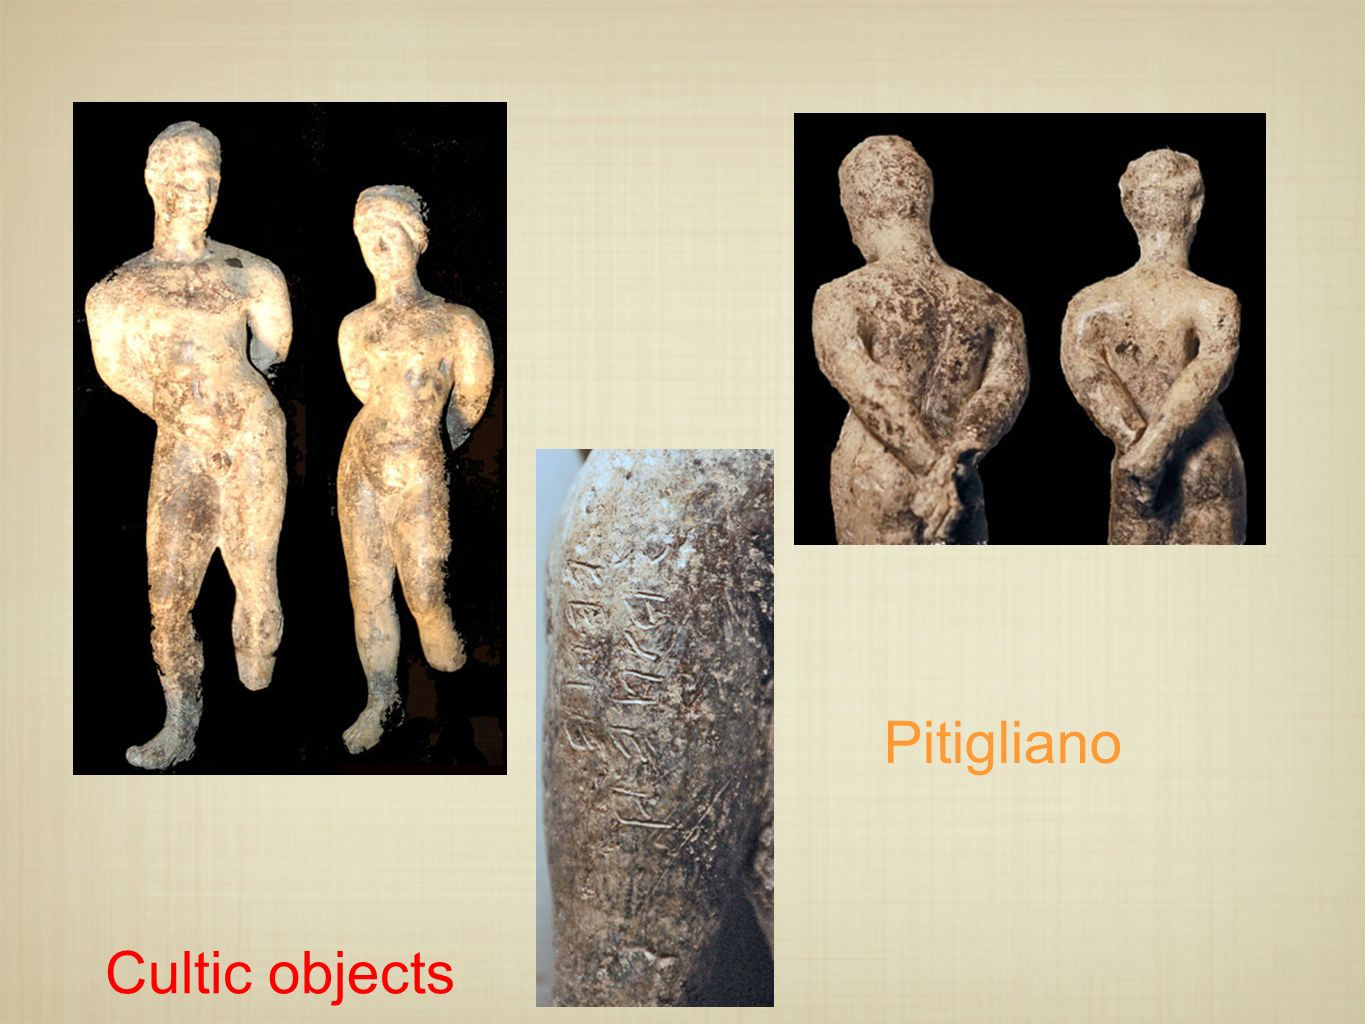 Pitigliano Cultic objects